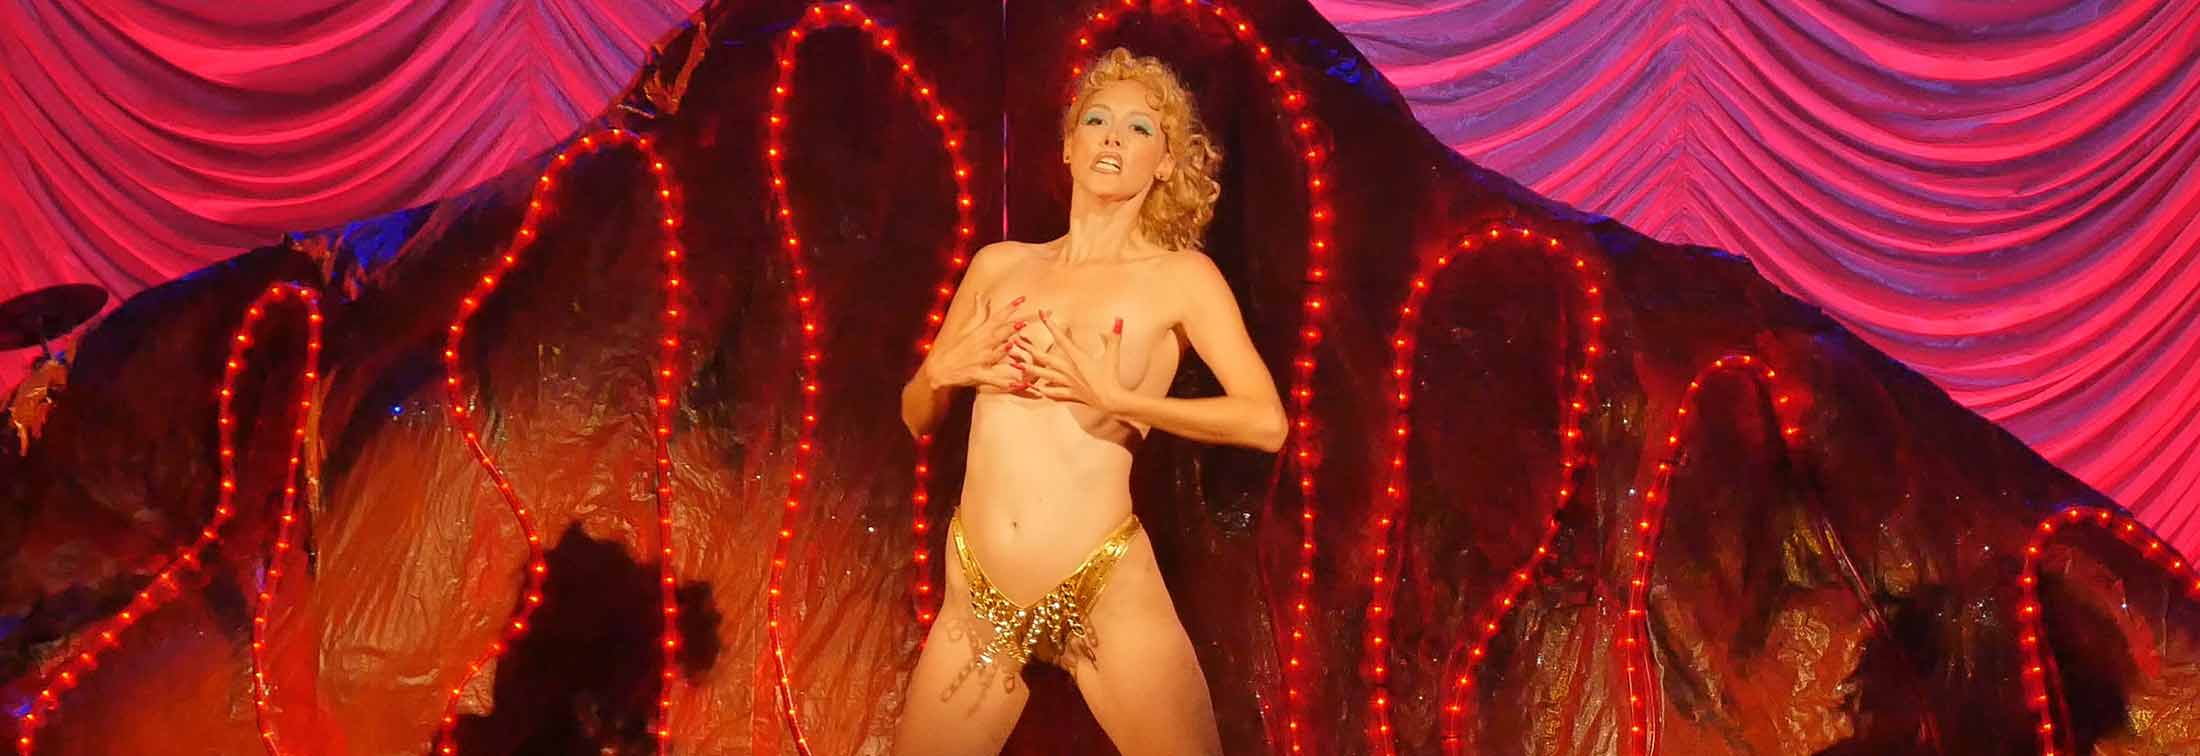 You Don't Nomi - 'Showgirls': shit or masterpiece of shit?